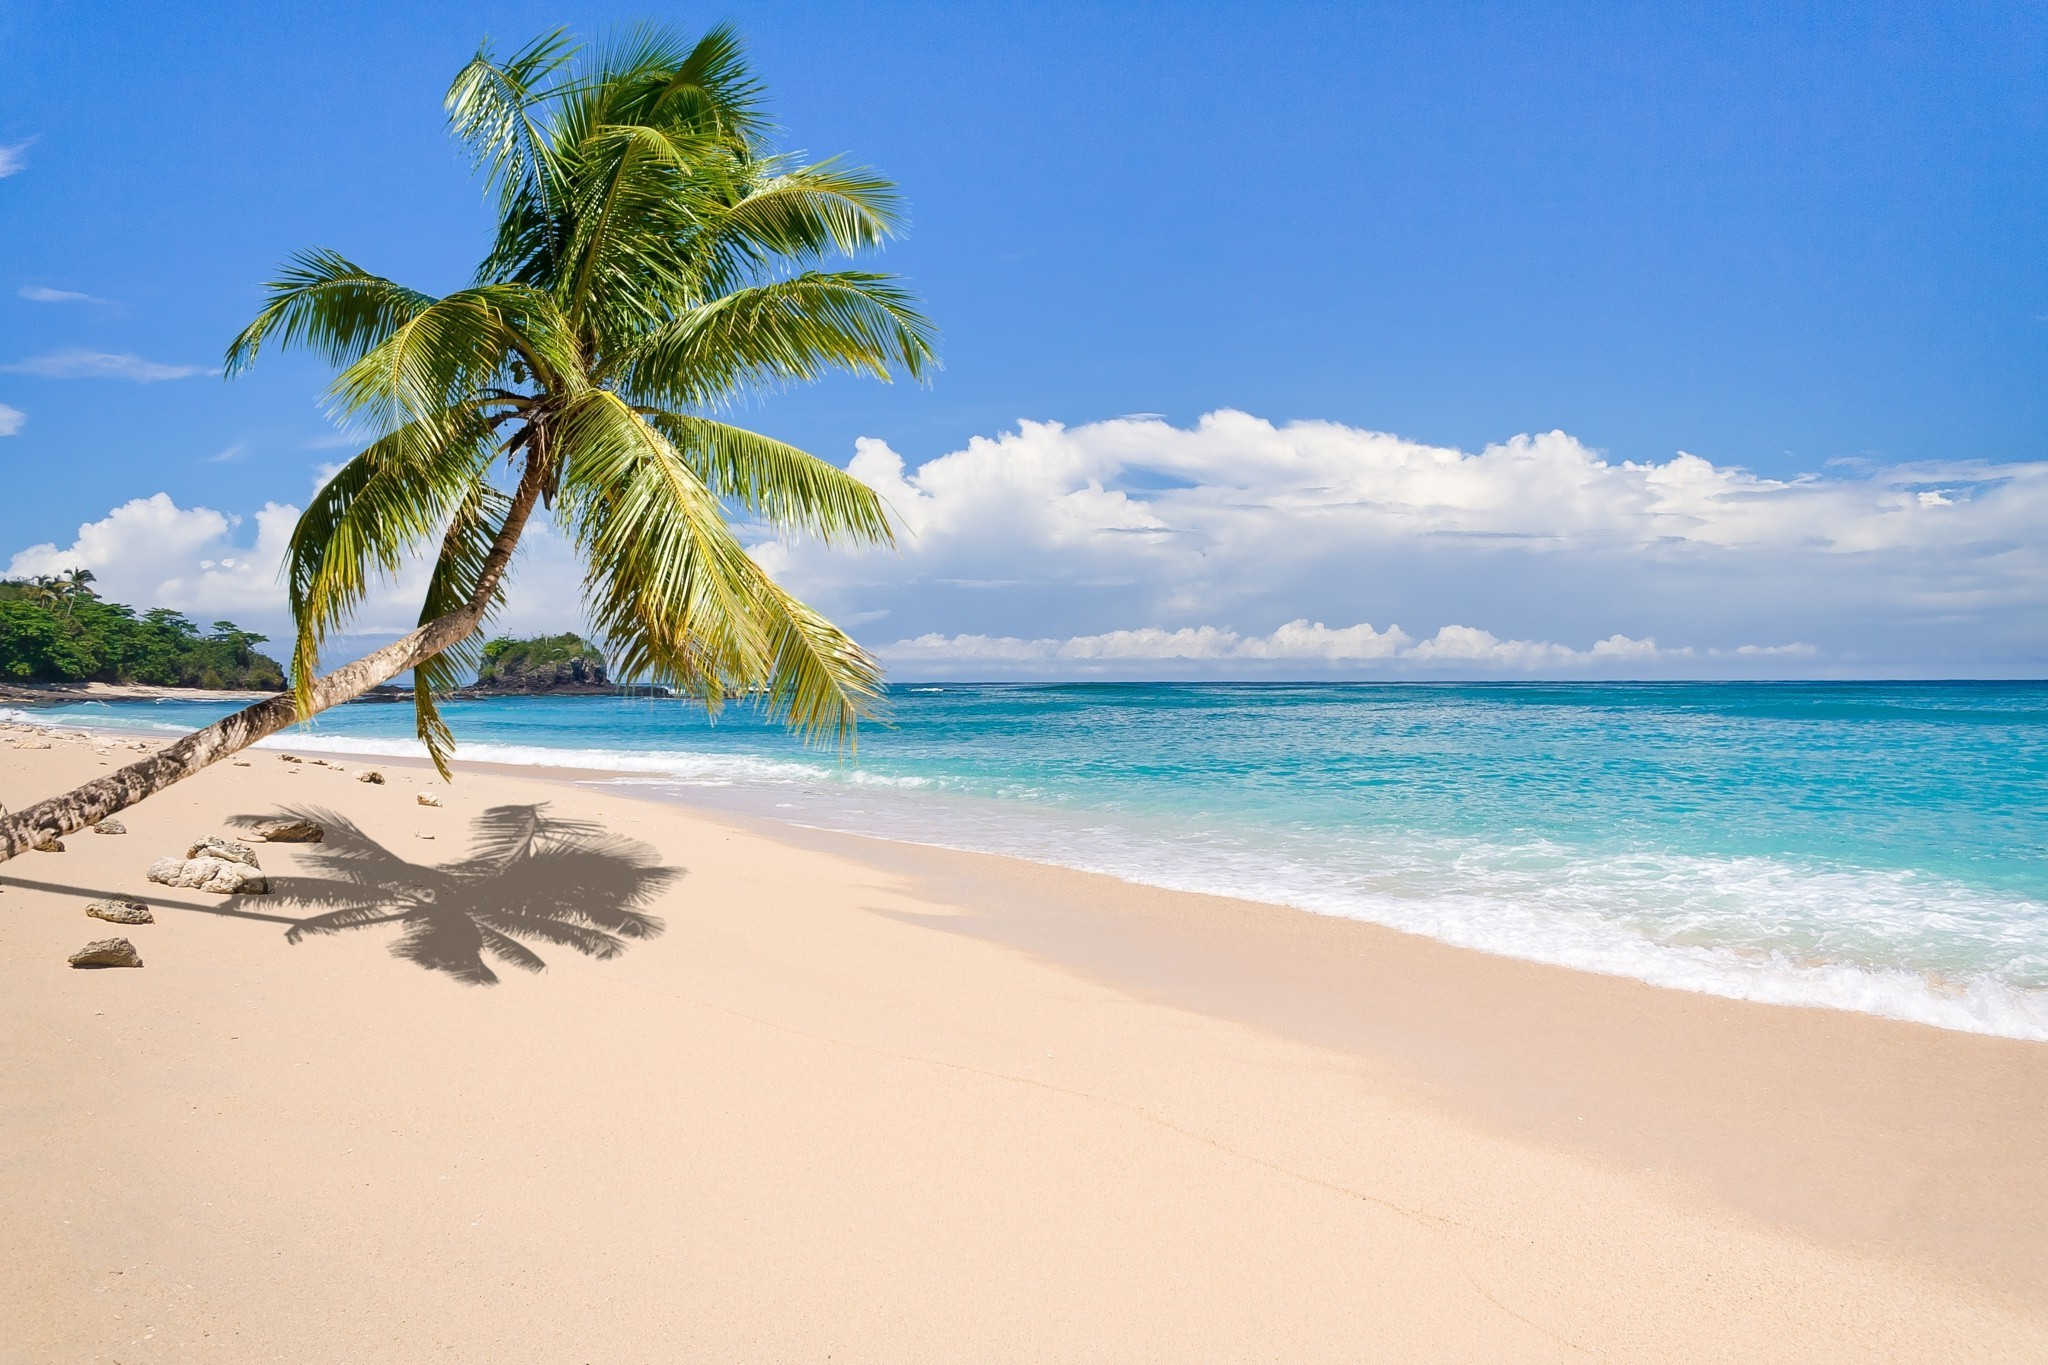 Hd Tropical Island Beach Paradise Wallpapers And Backgrounds: Tropical Island Background ·① WallpaperTag